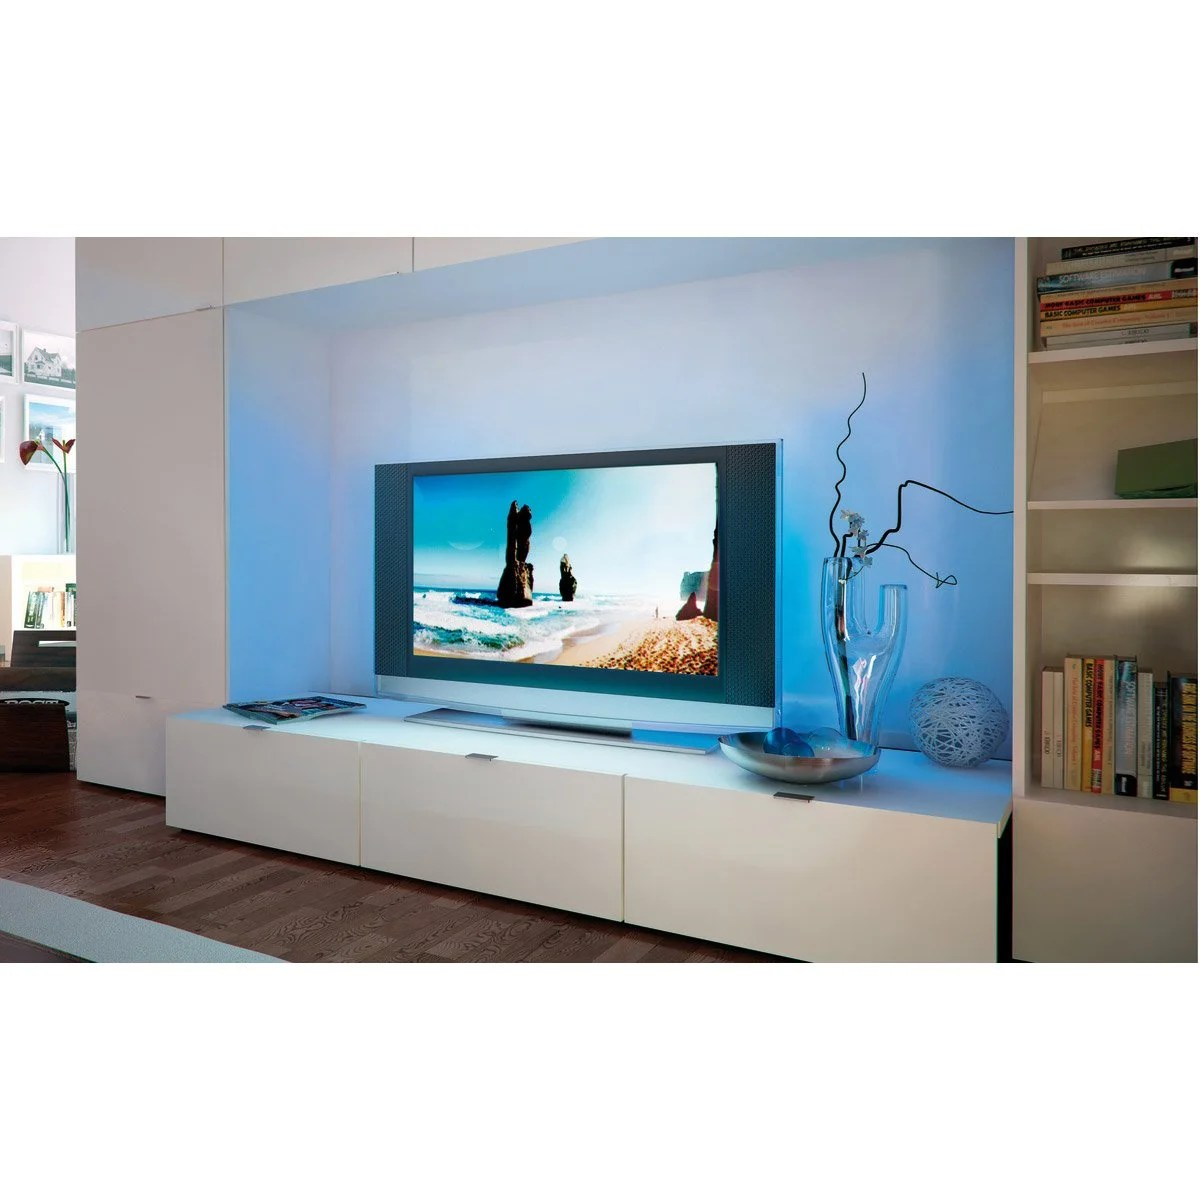 Feu De Cheminee Ecran Tv Ruban Led Tv 2 X 5m Multicolore 3000k Paulmann